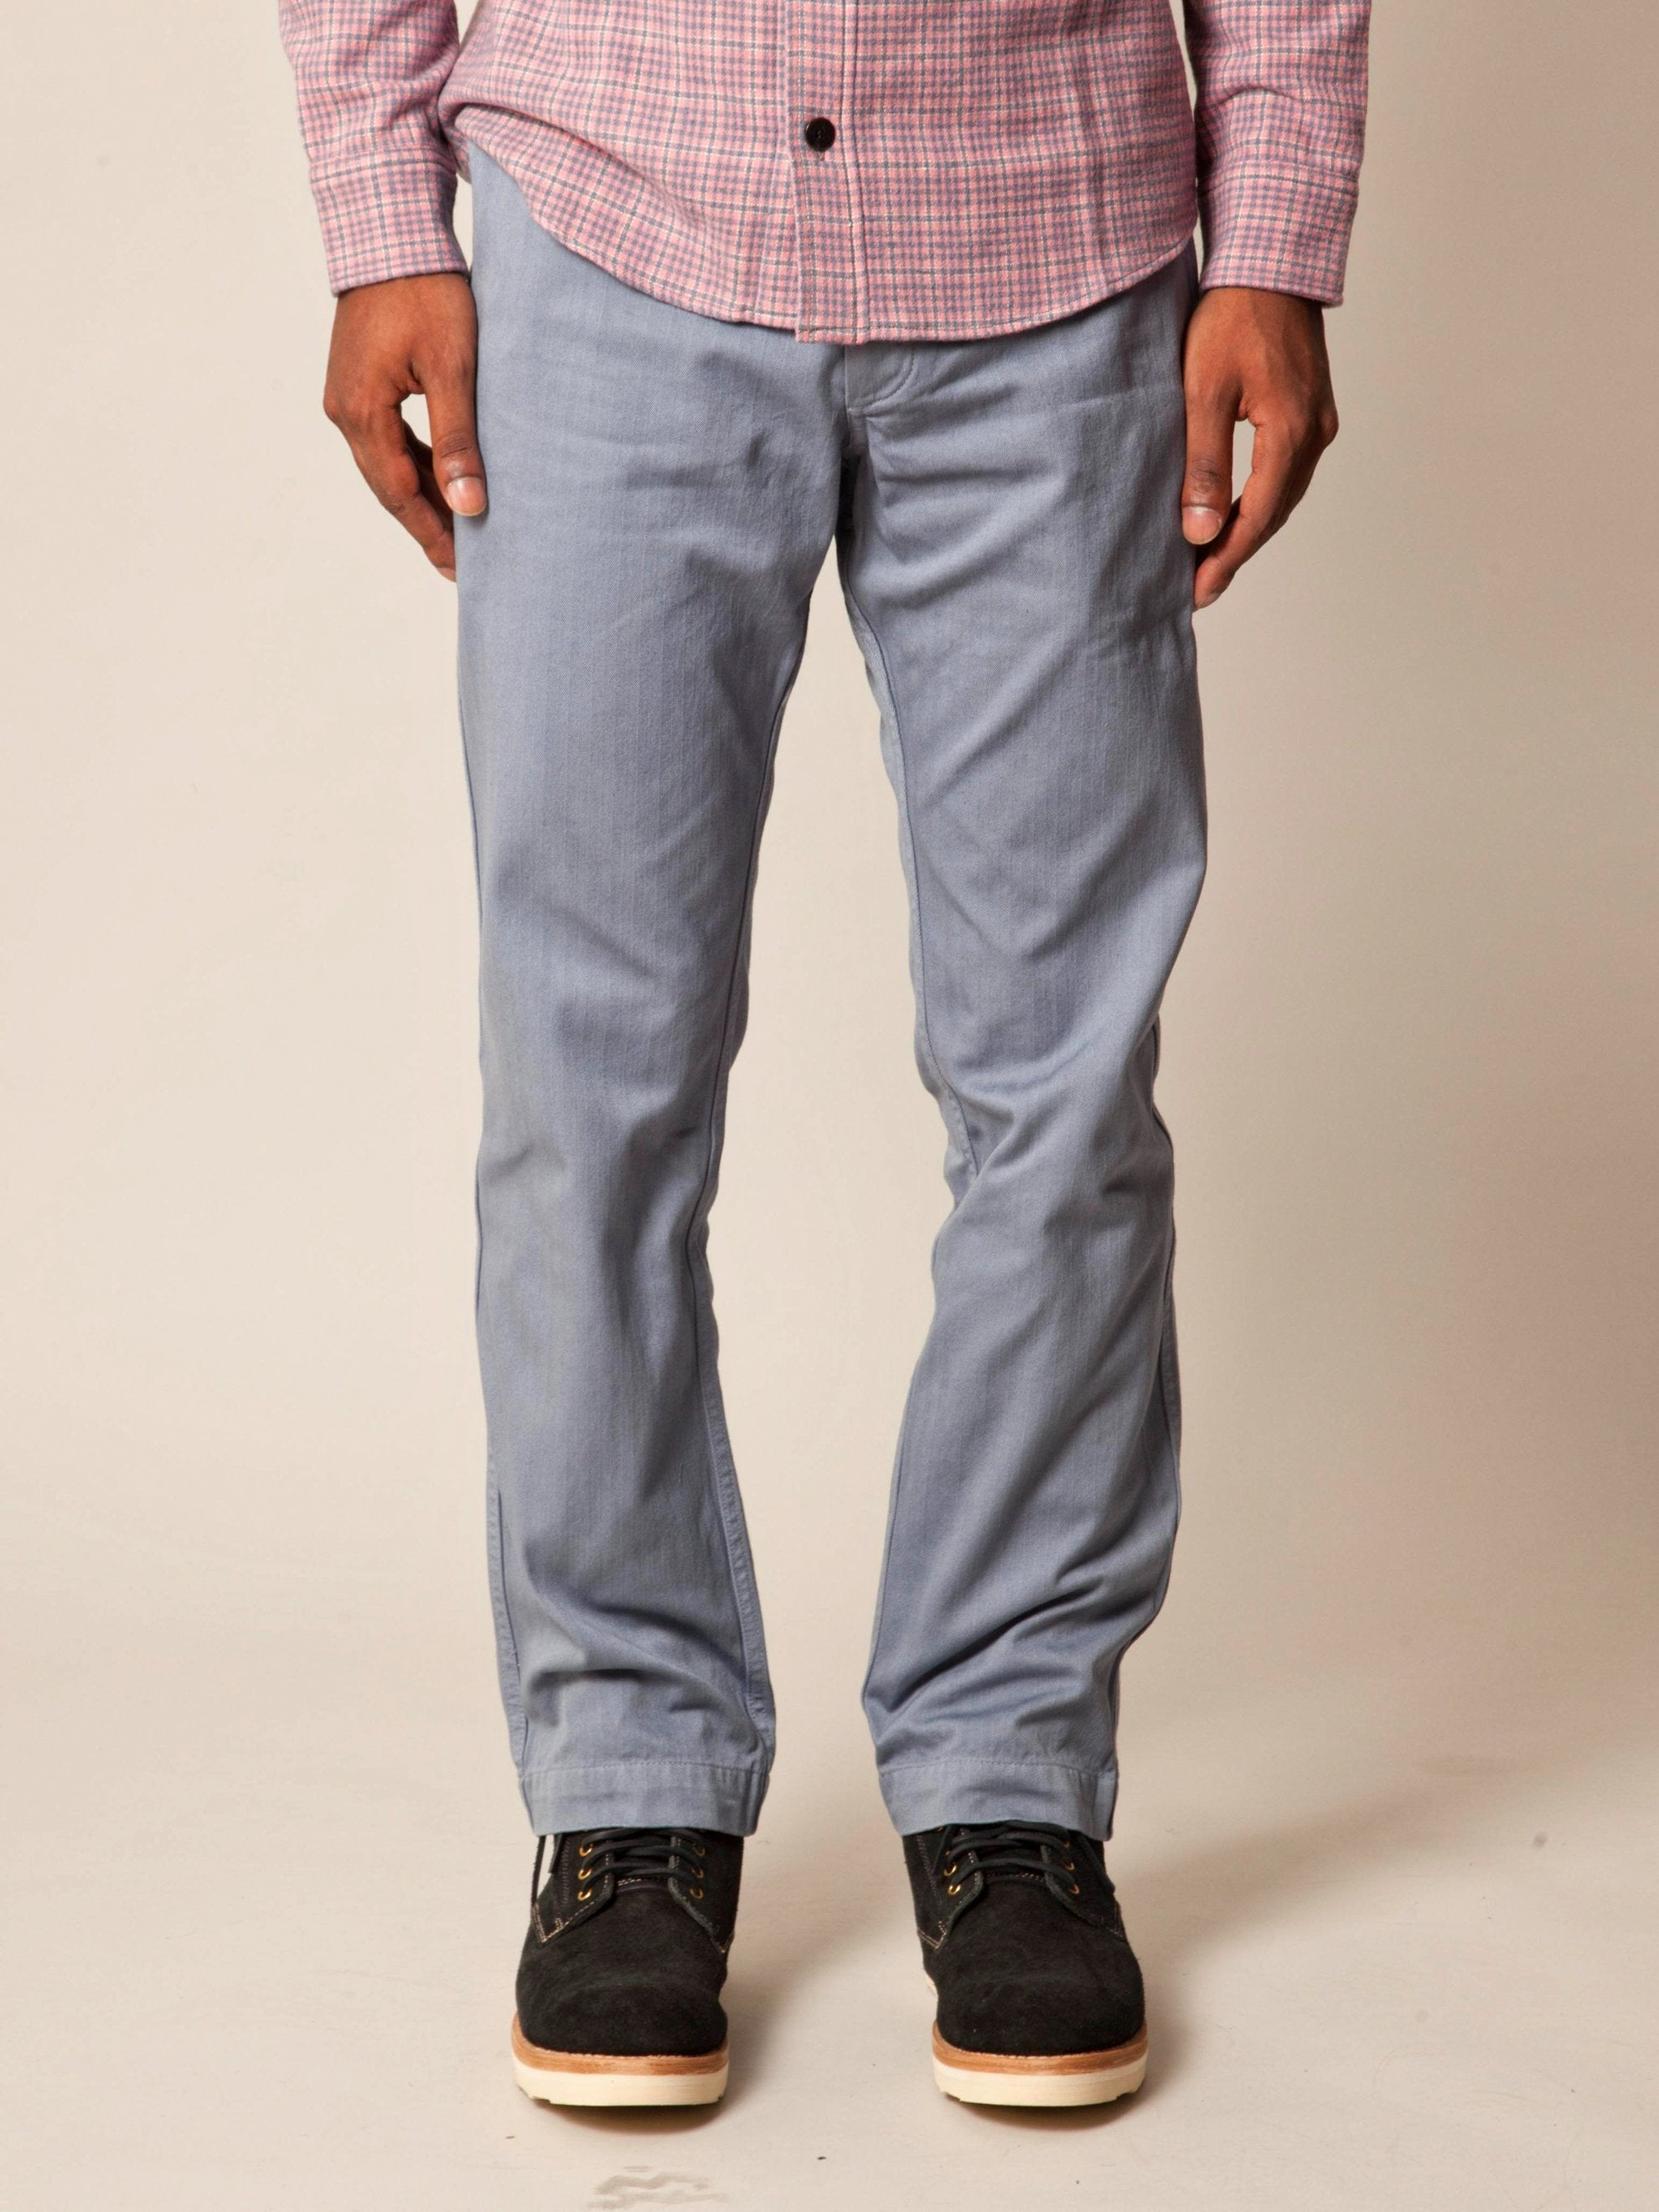 Grey Pastoral Pants Herringbone 2